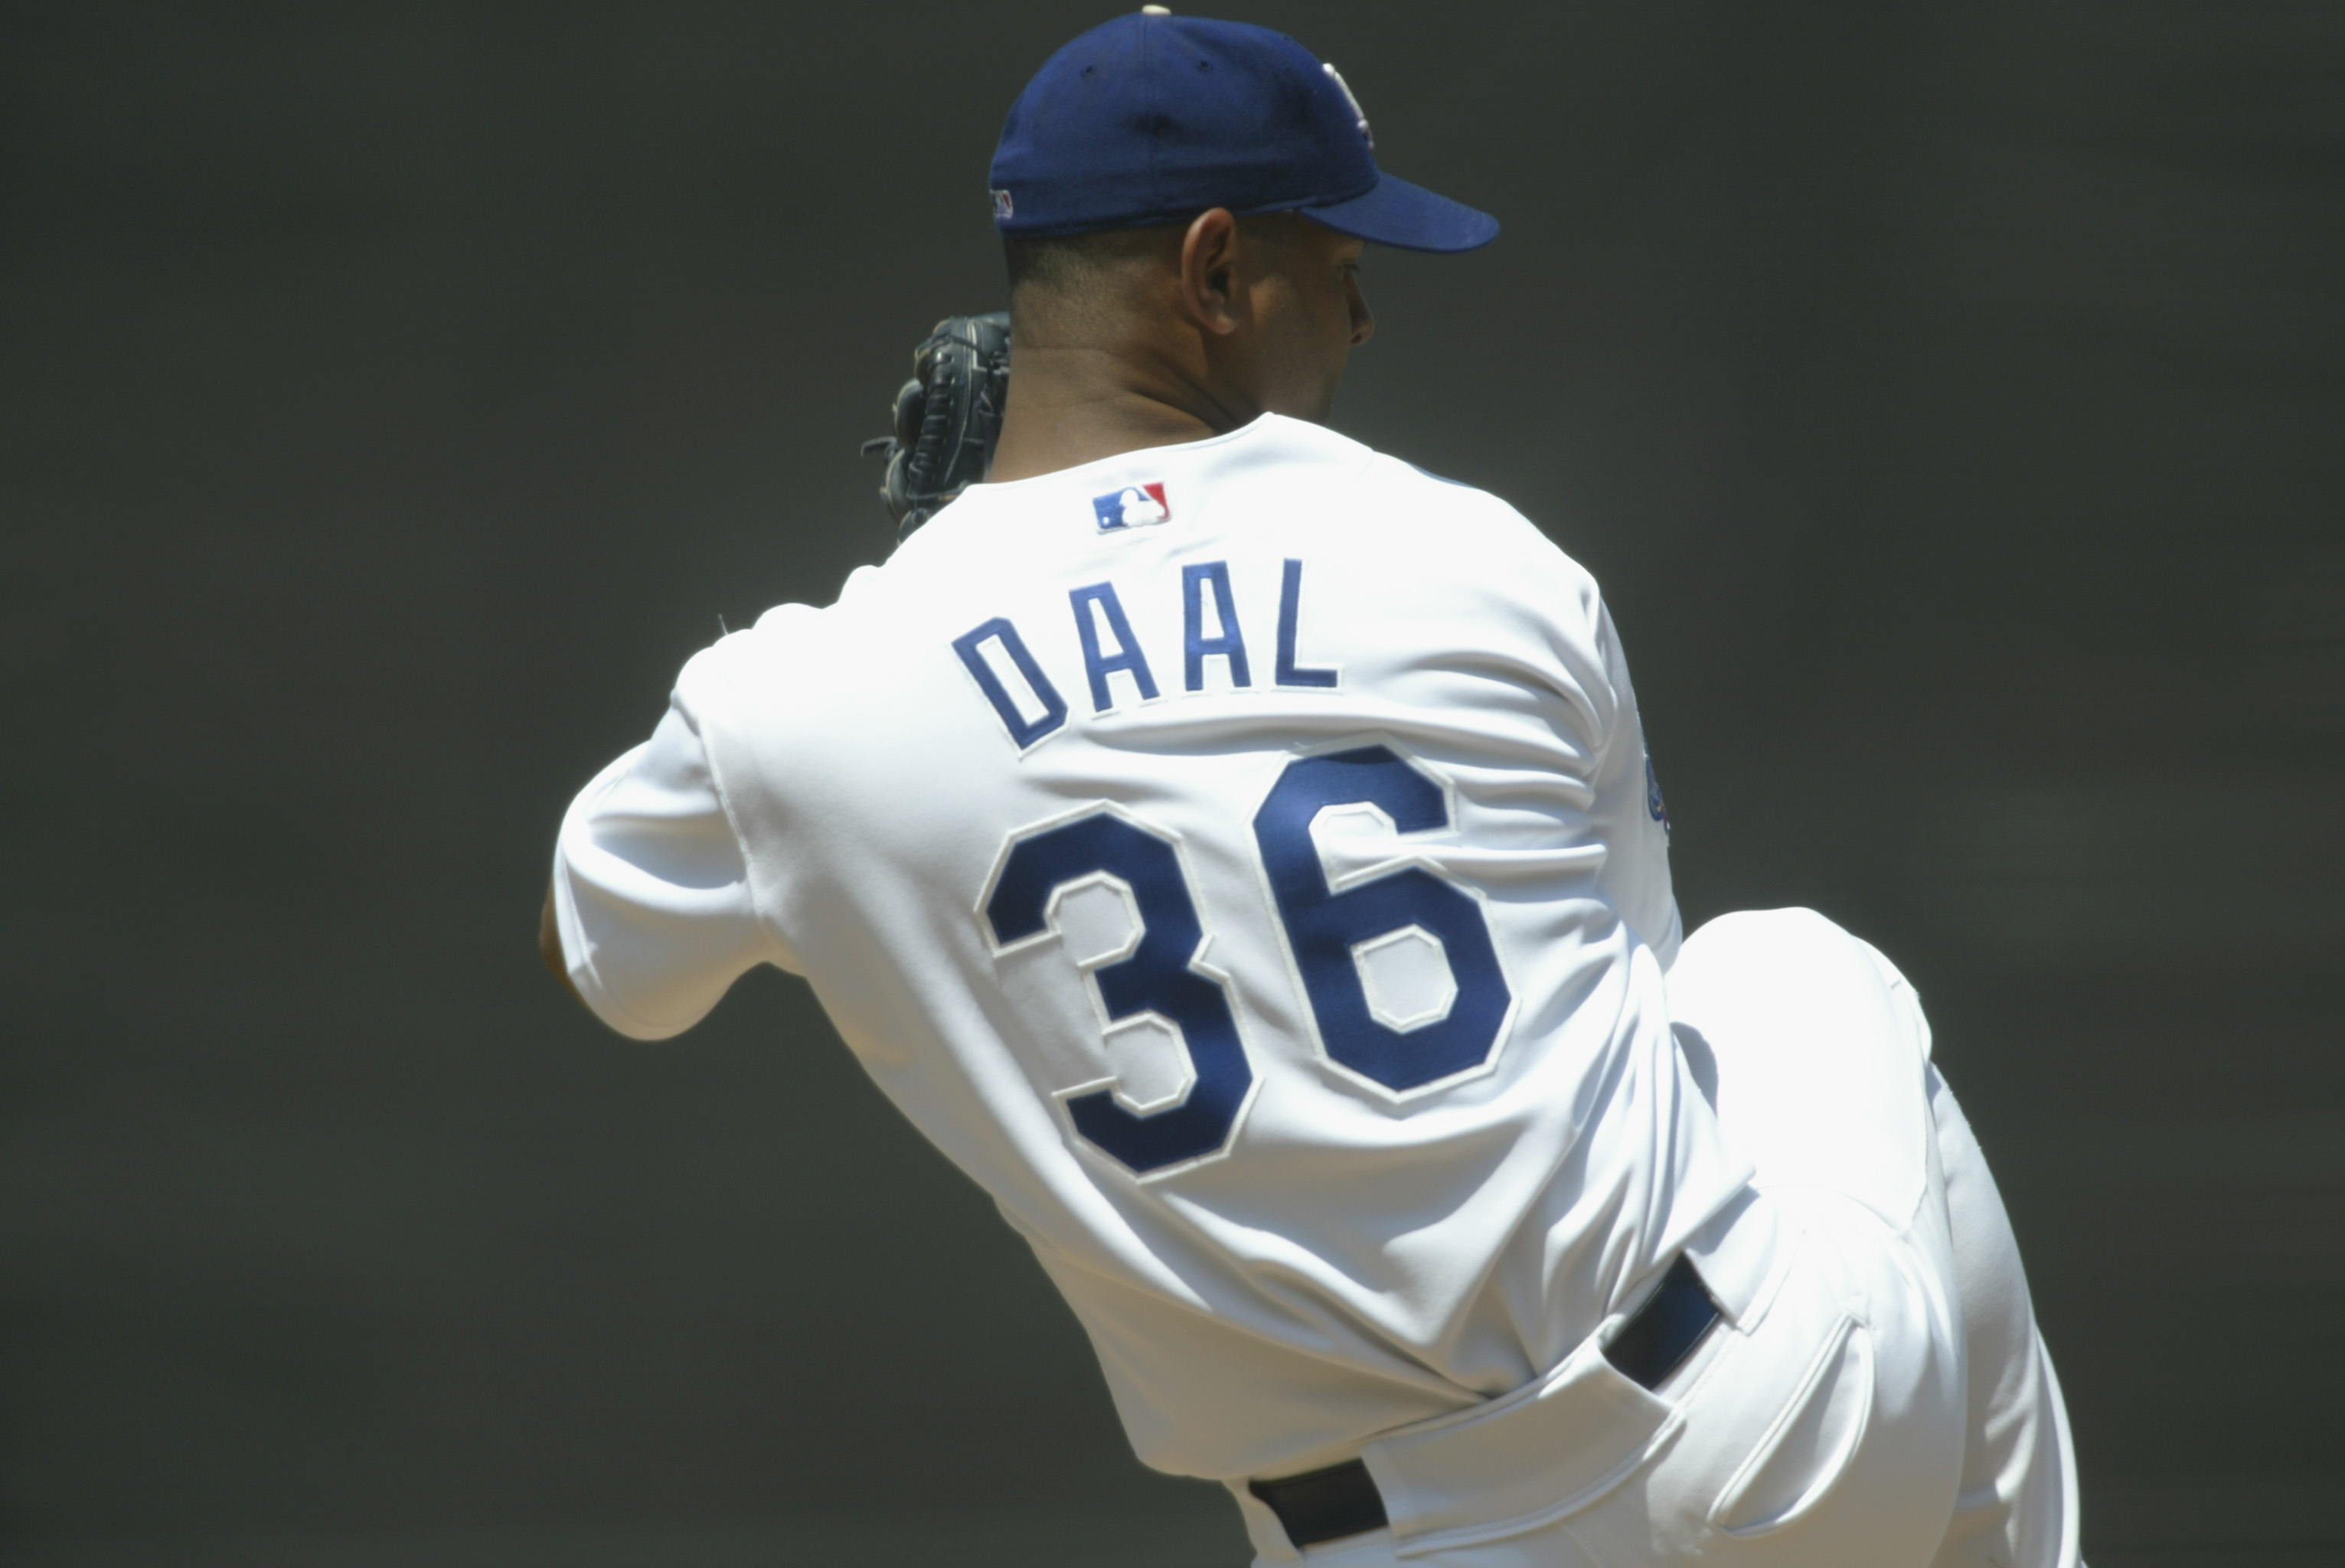 LOS ANGELES - JULY 20:  Starting Pitcher Omar Daal #36 of the Los Angeles Dodgers throws against the San Francisco Giants during the MLB game on July 20, 2002 at Dodger Stadium in Los Angeles, California.  The Dodgers defeated the Giants 4-2.  (Photo by S